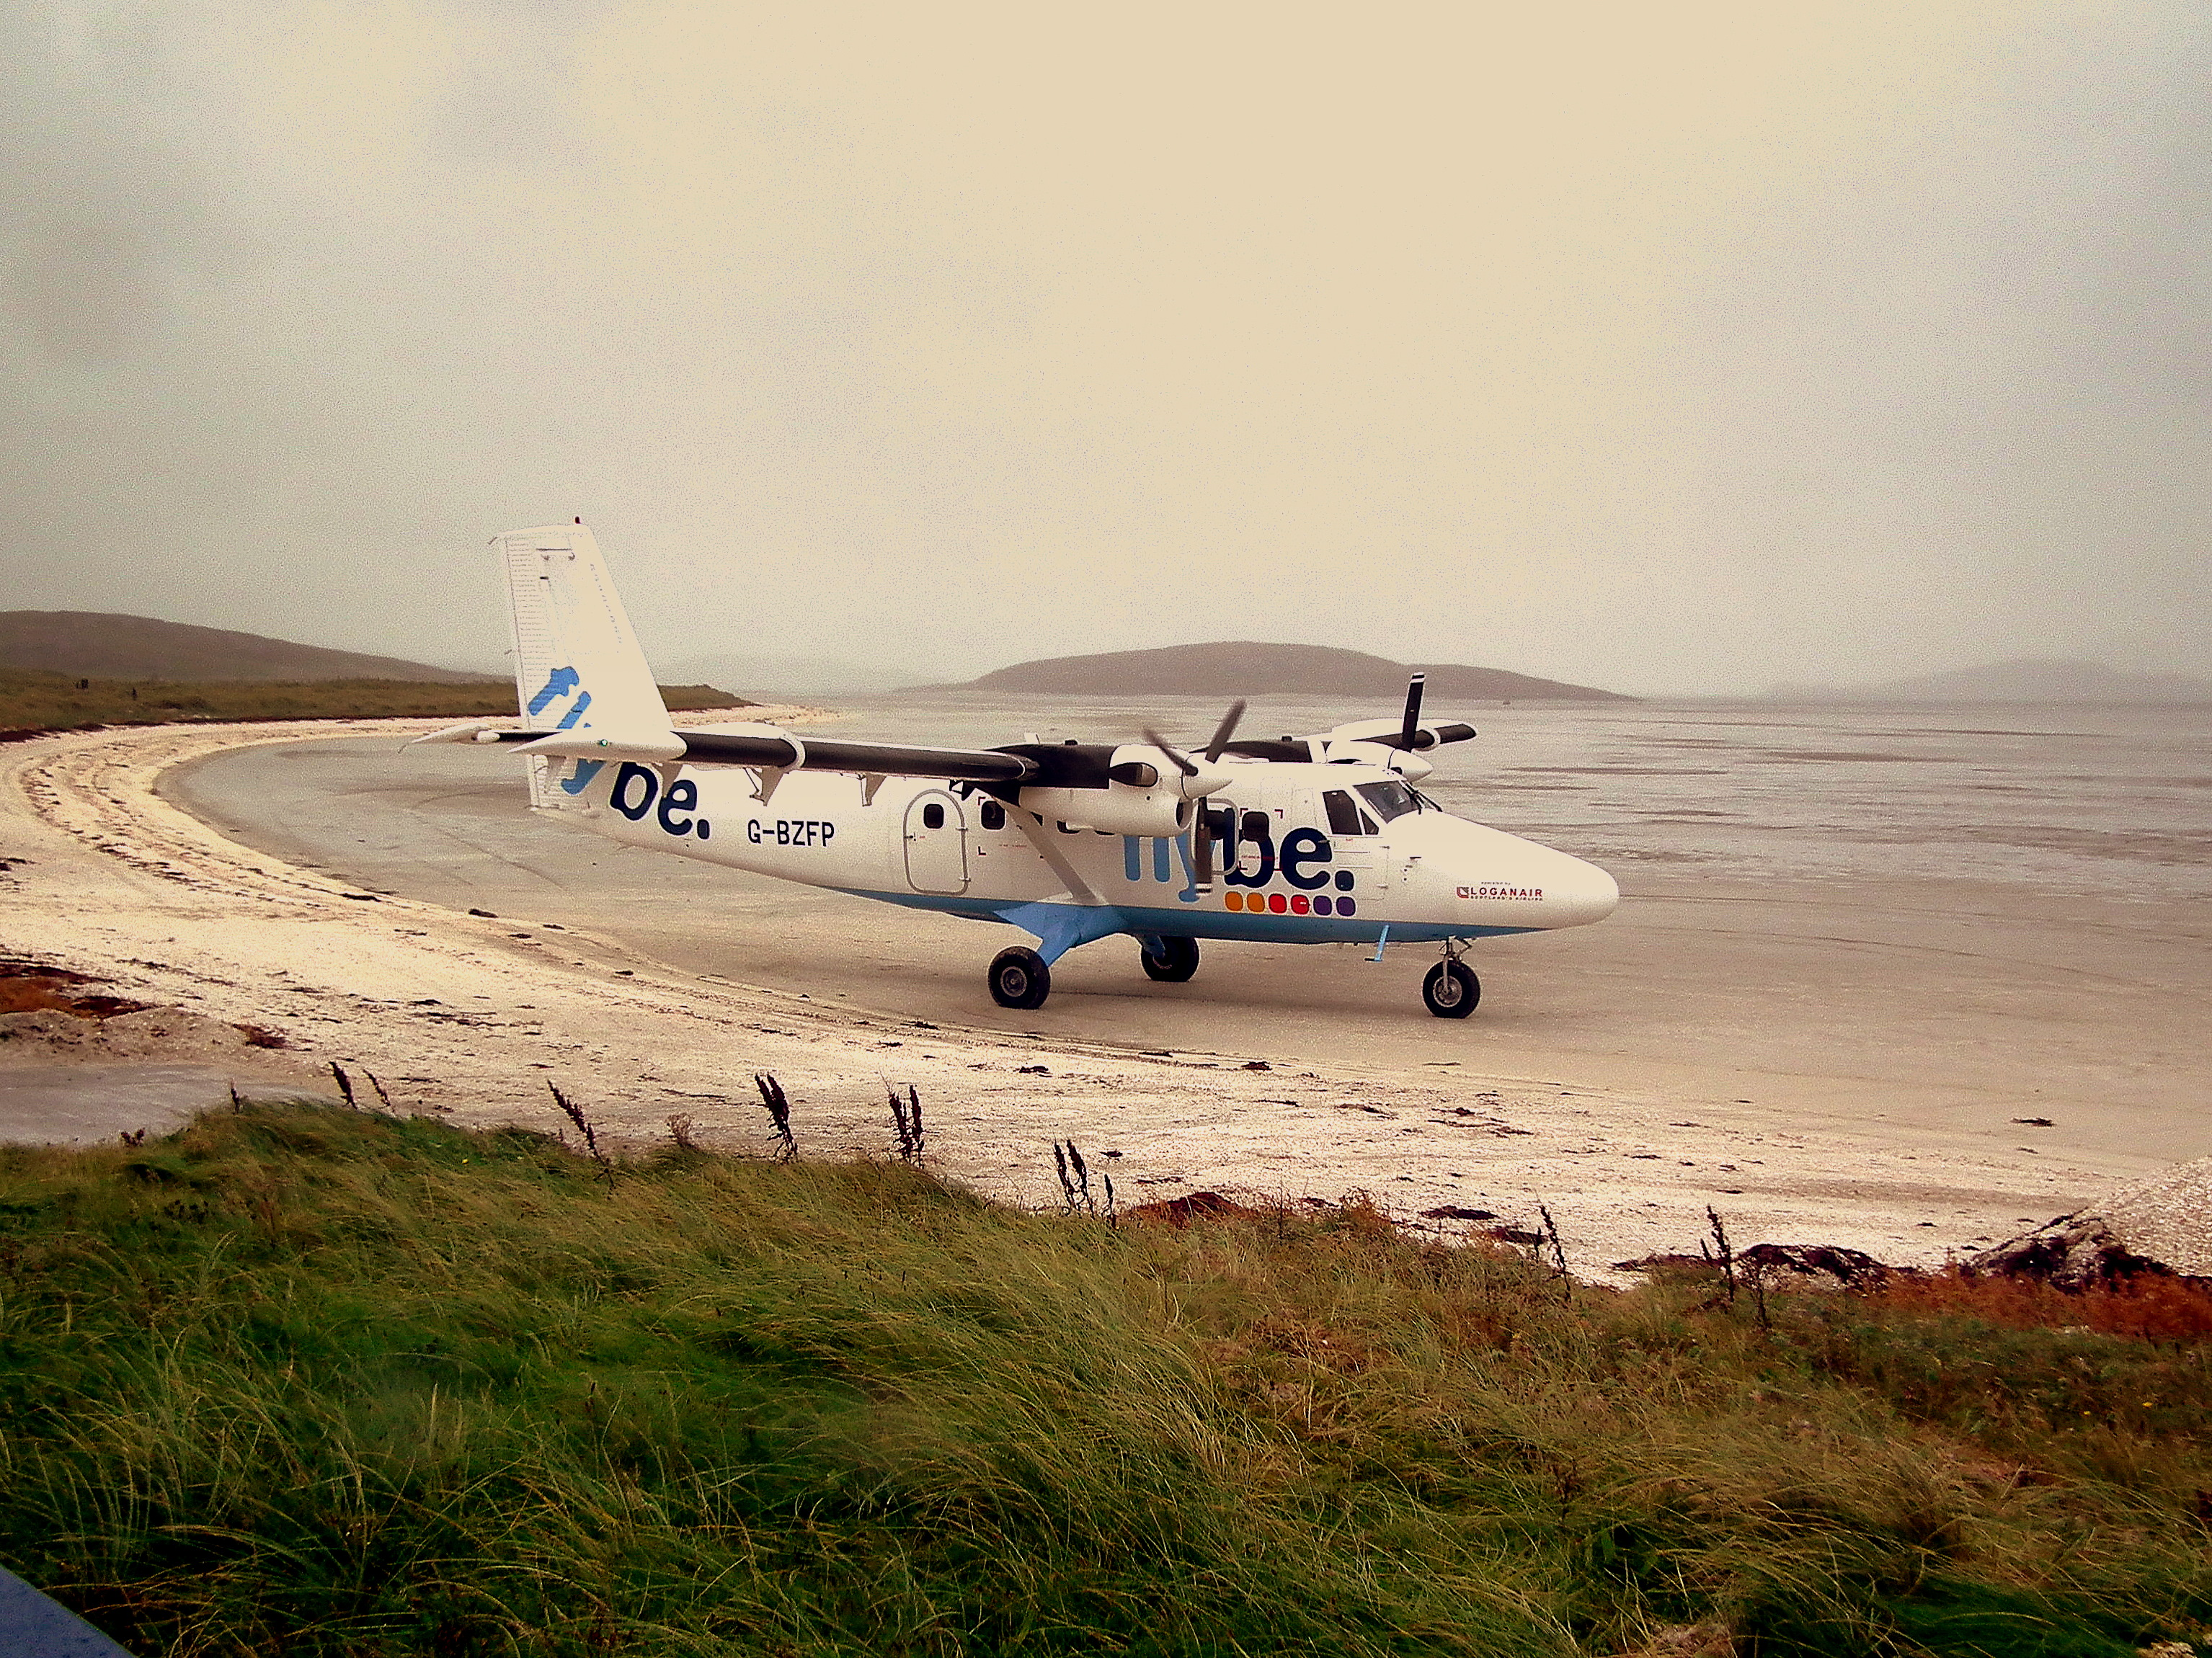 Flybe DHC-6 Twin Otter